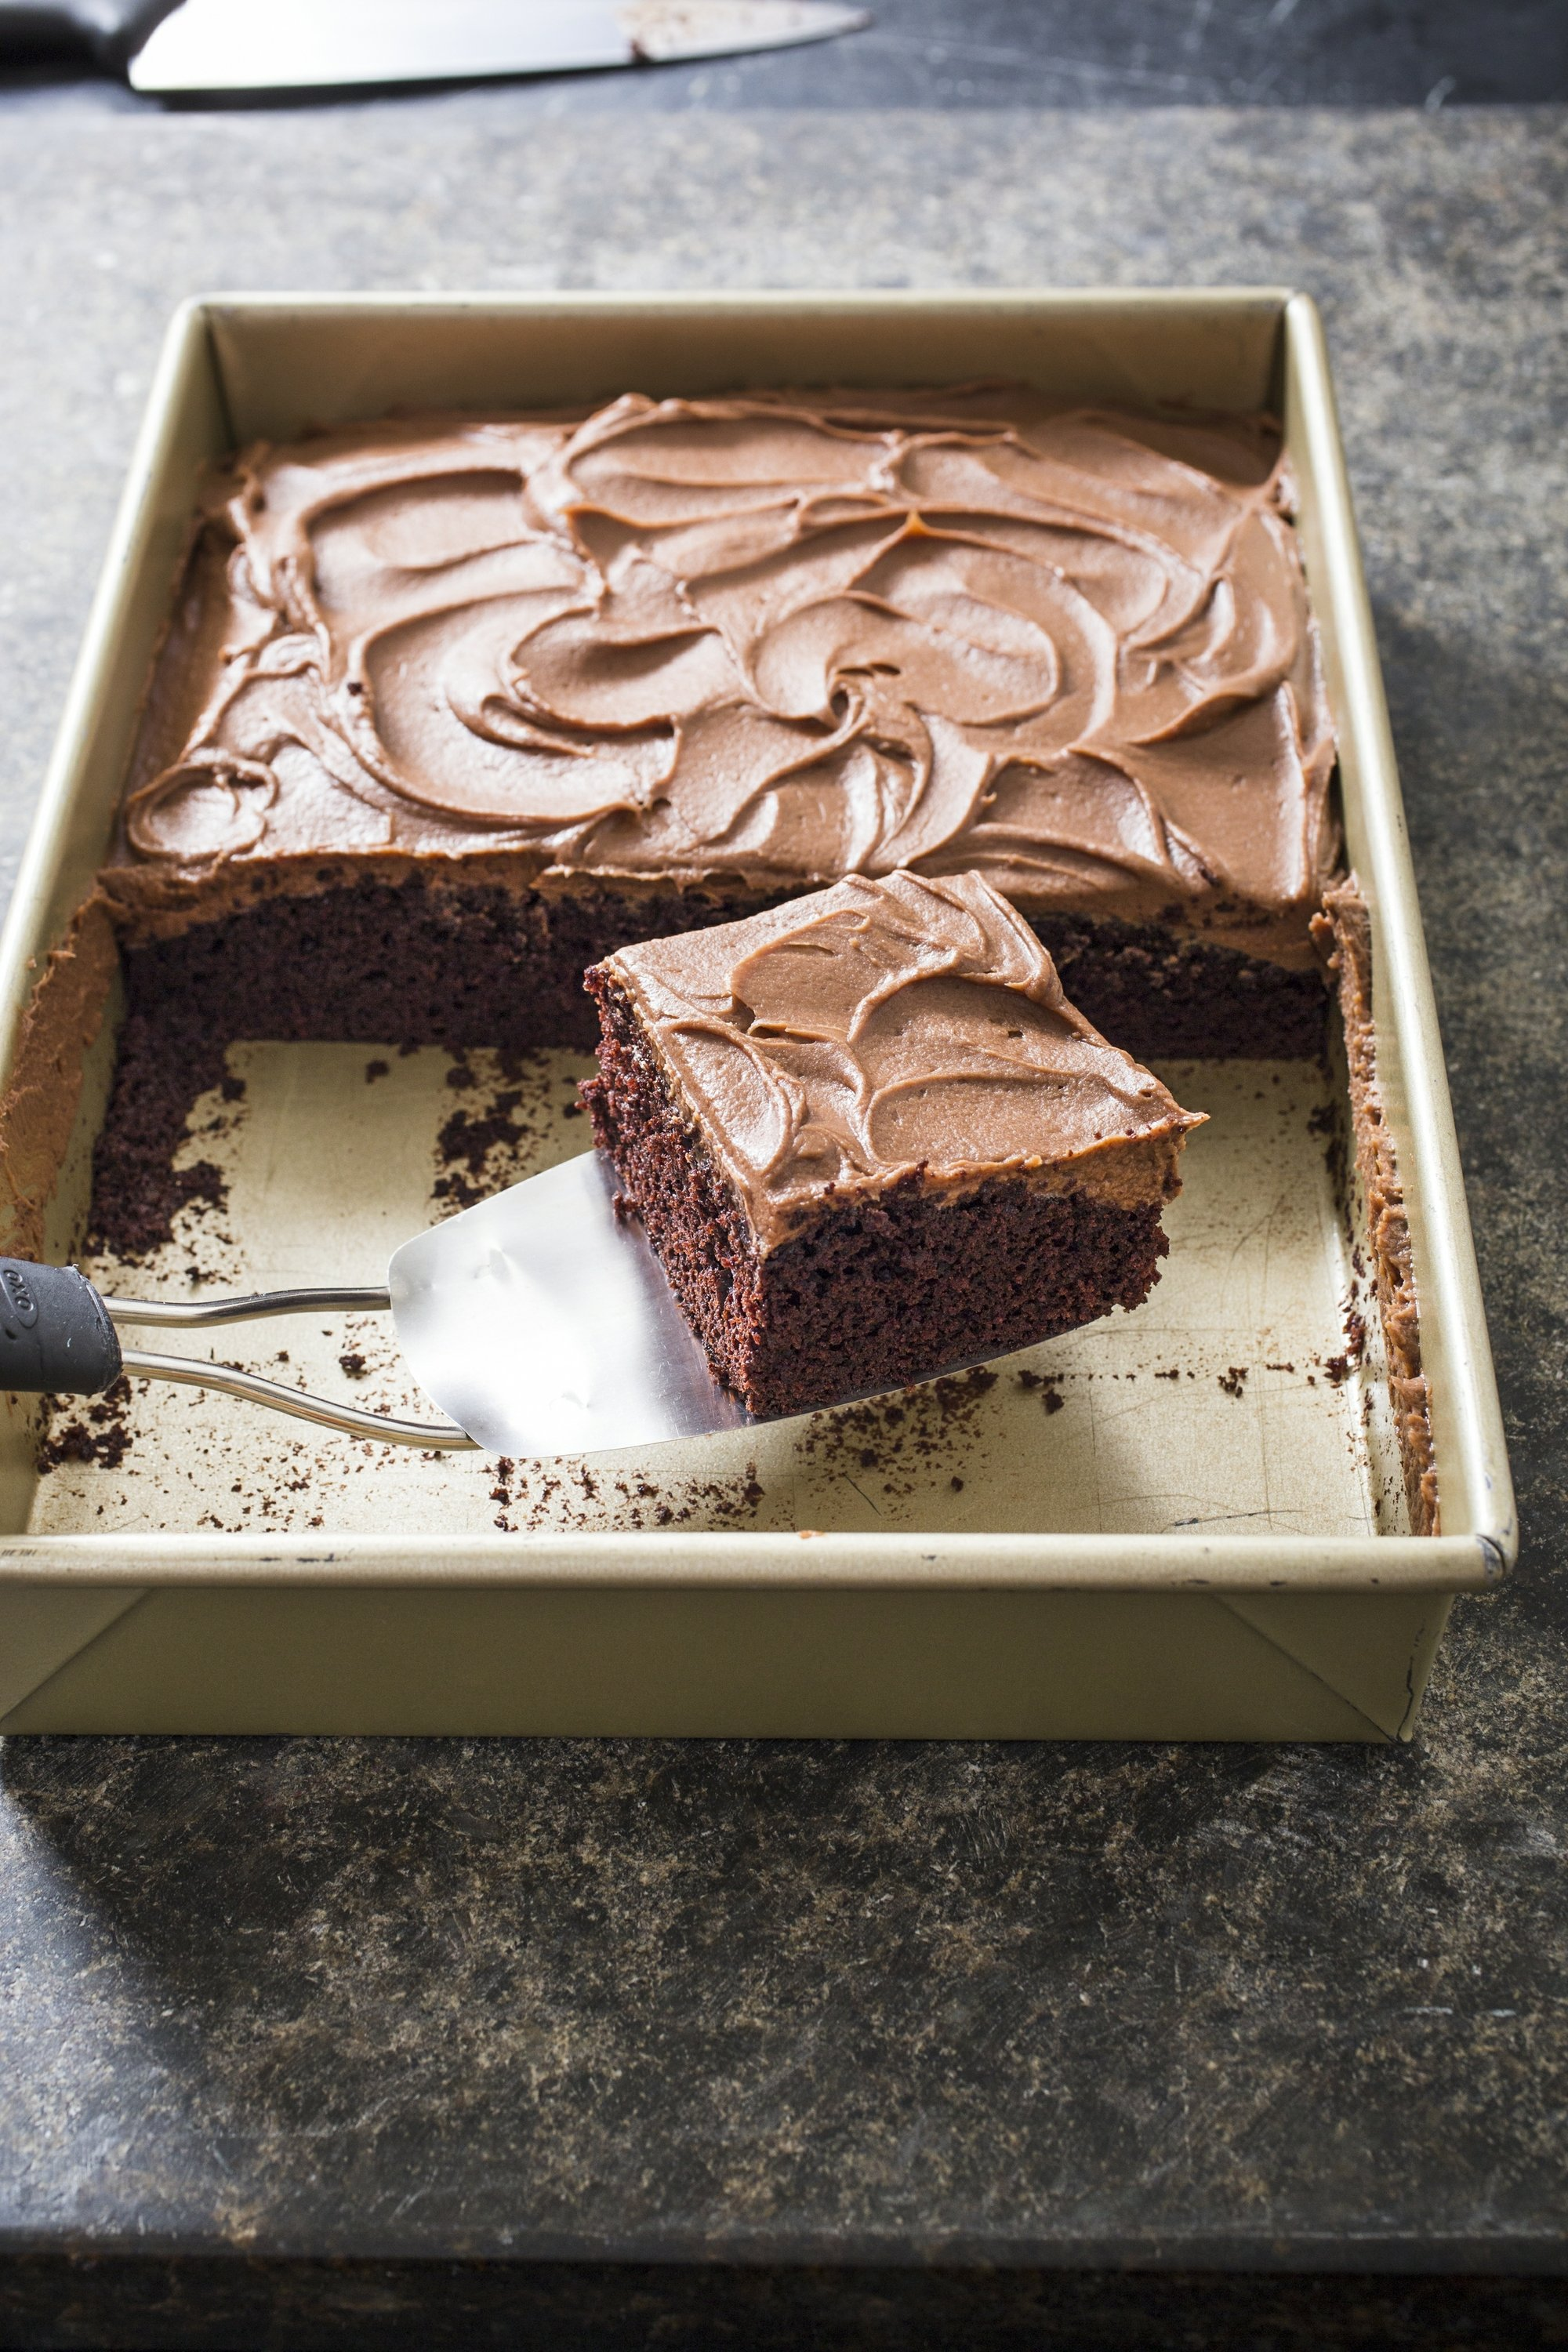 Global Küchen Test Invite Your Kids To Help Make This Chocolate Sheet Cake